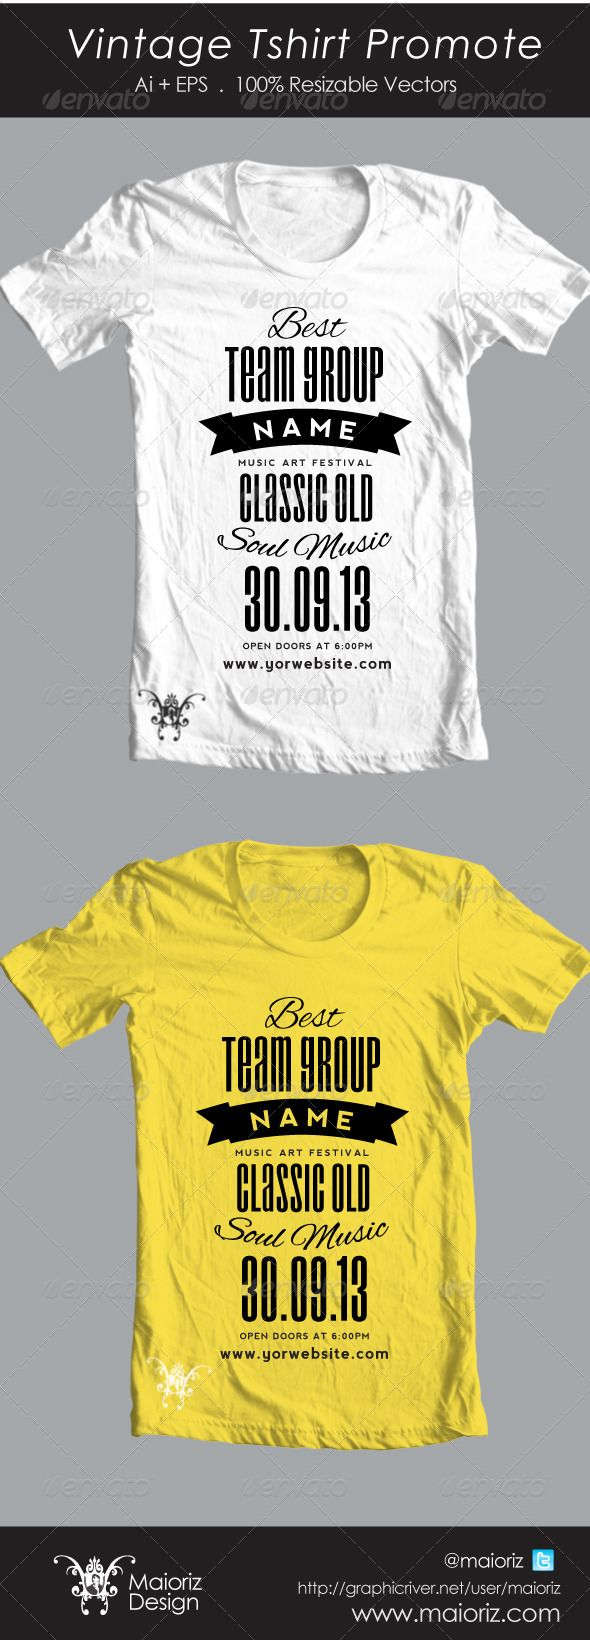 96 best images about t shirt graphic design on pinterest for Event staff shirt ideas